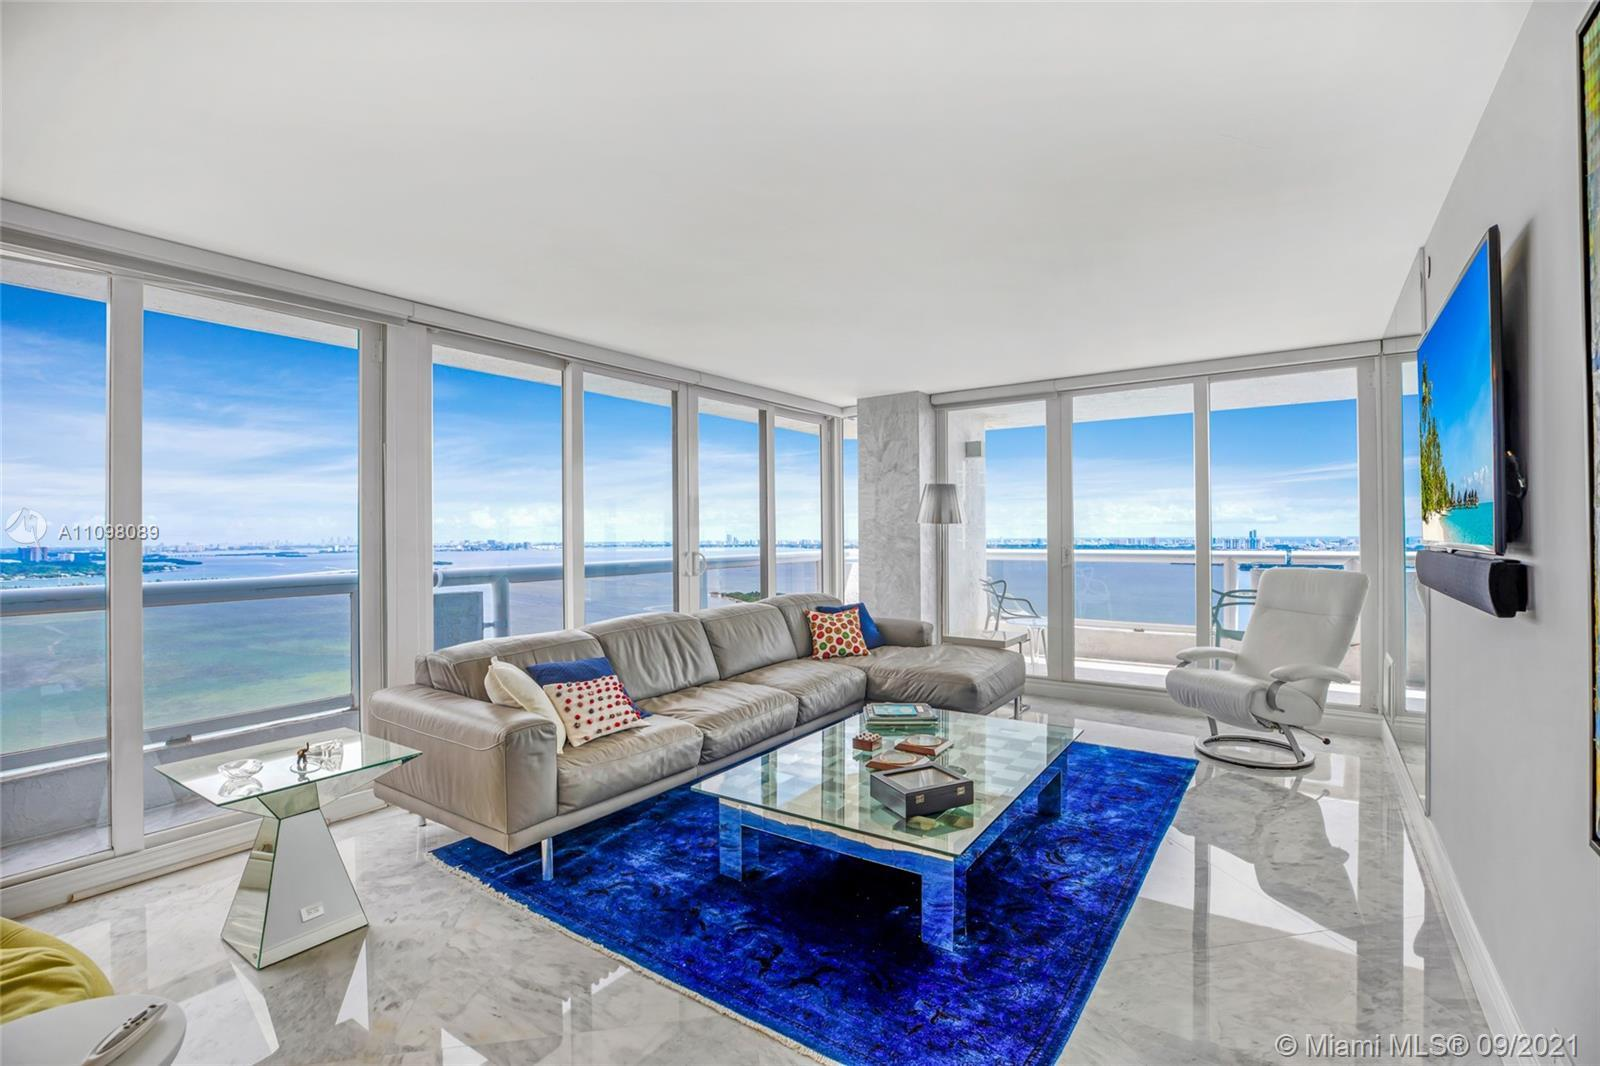 Spectacular penthouse! It's a million dollar views from the Bay and Miami skyline from your private